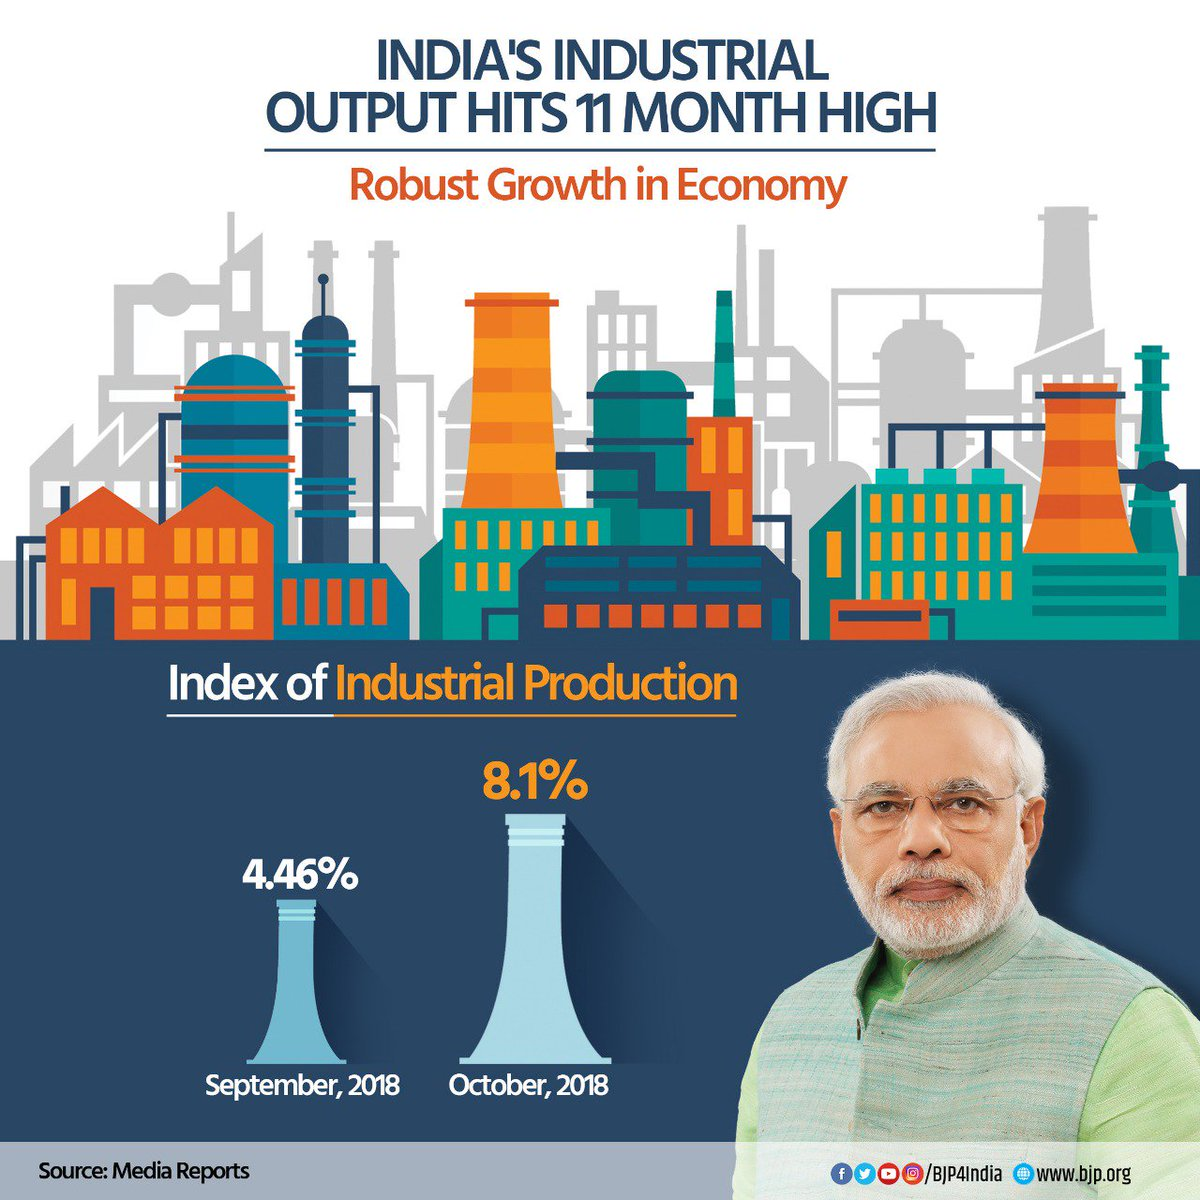 India's Industrial output hits 11 month high of 8.1% in October 2018.